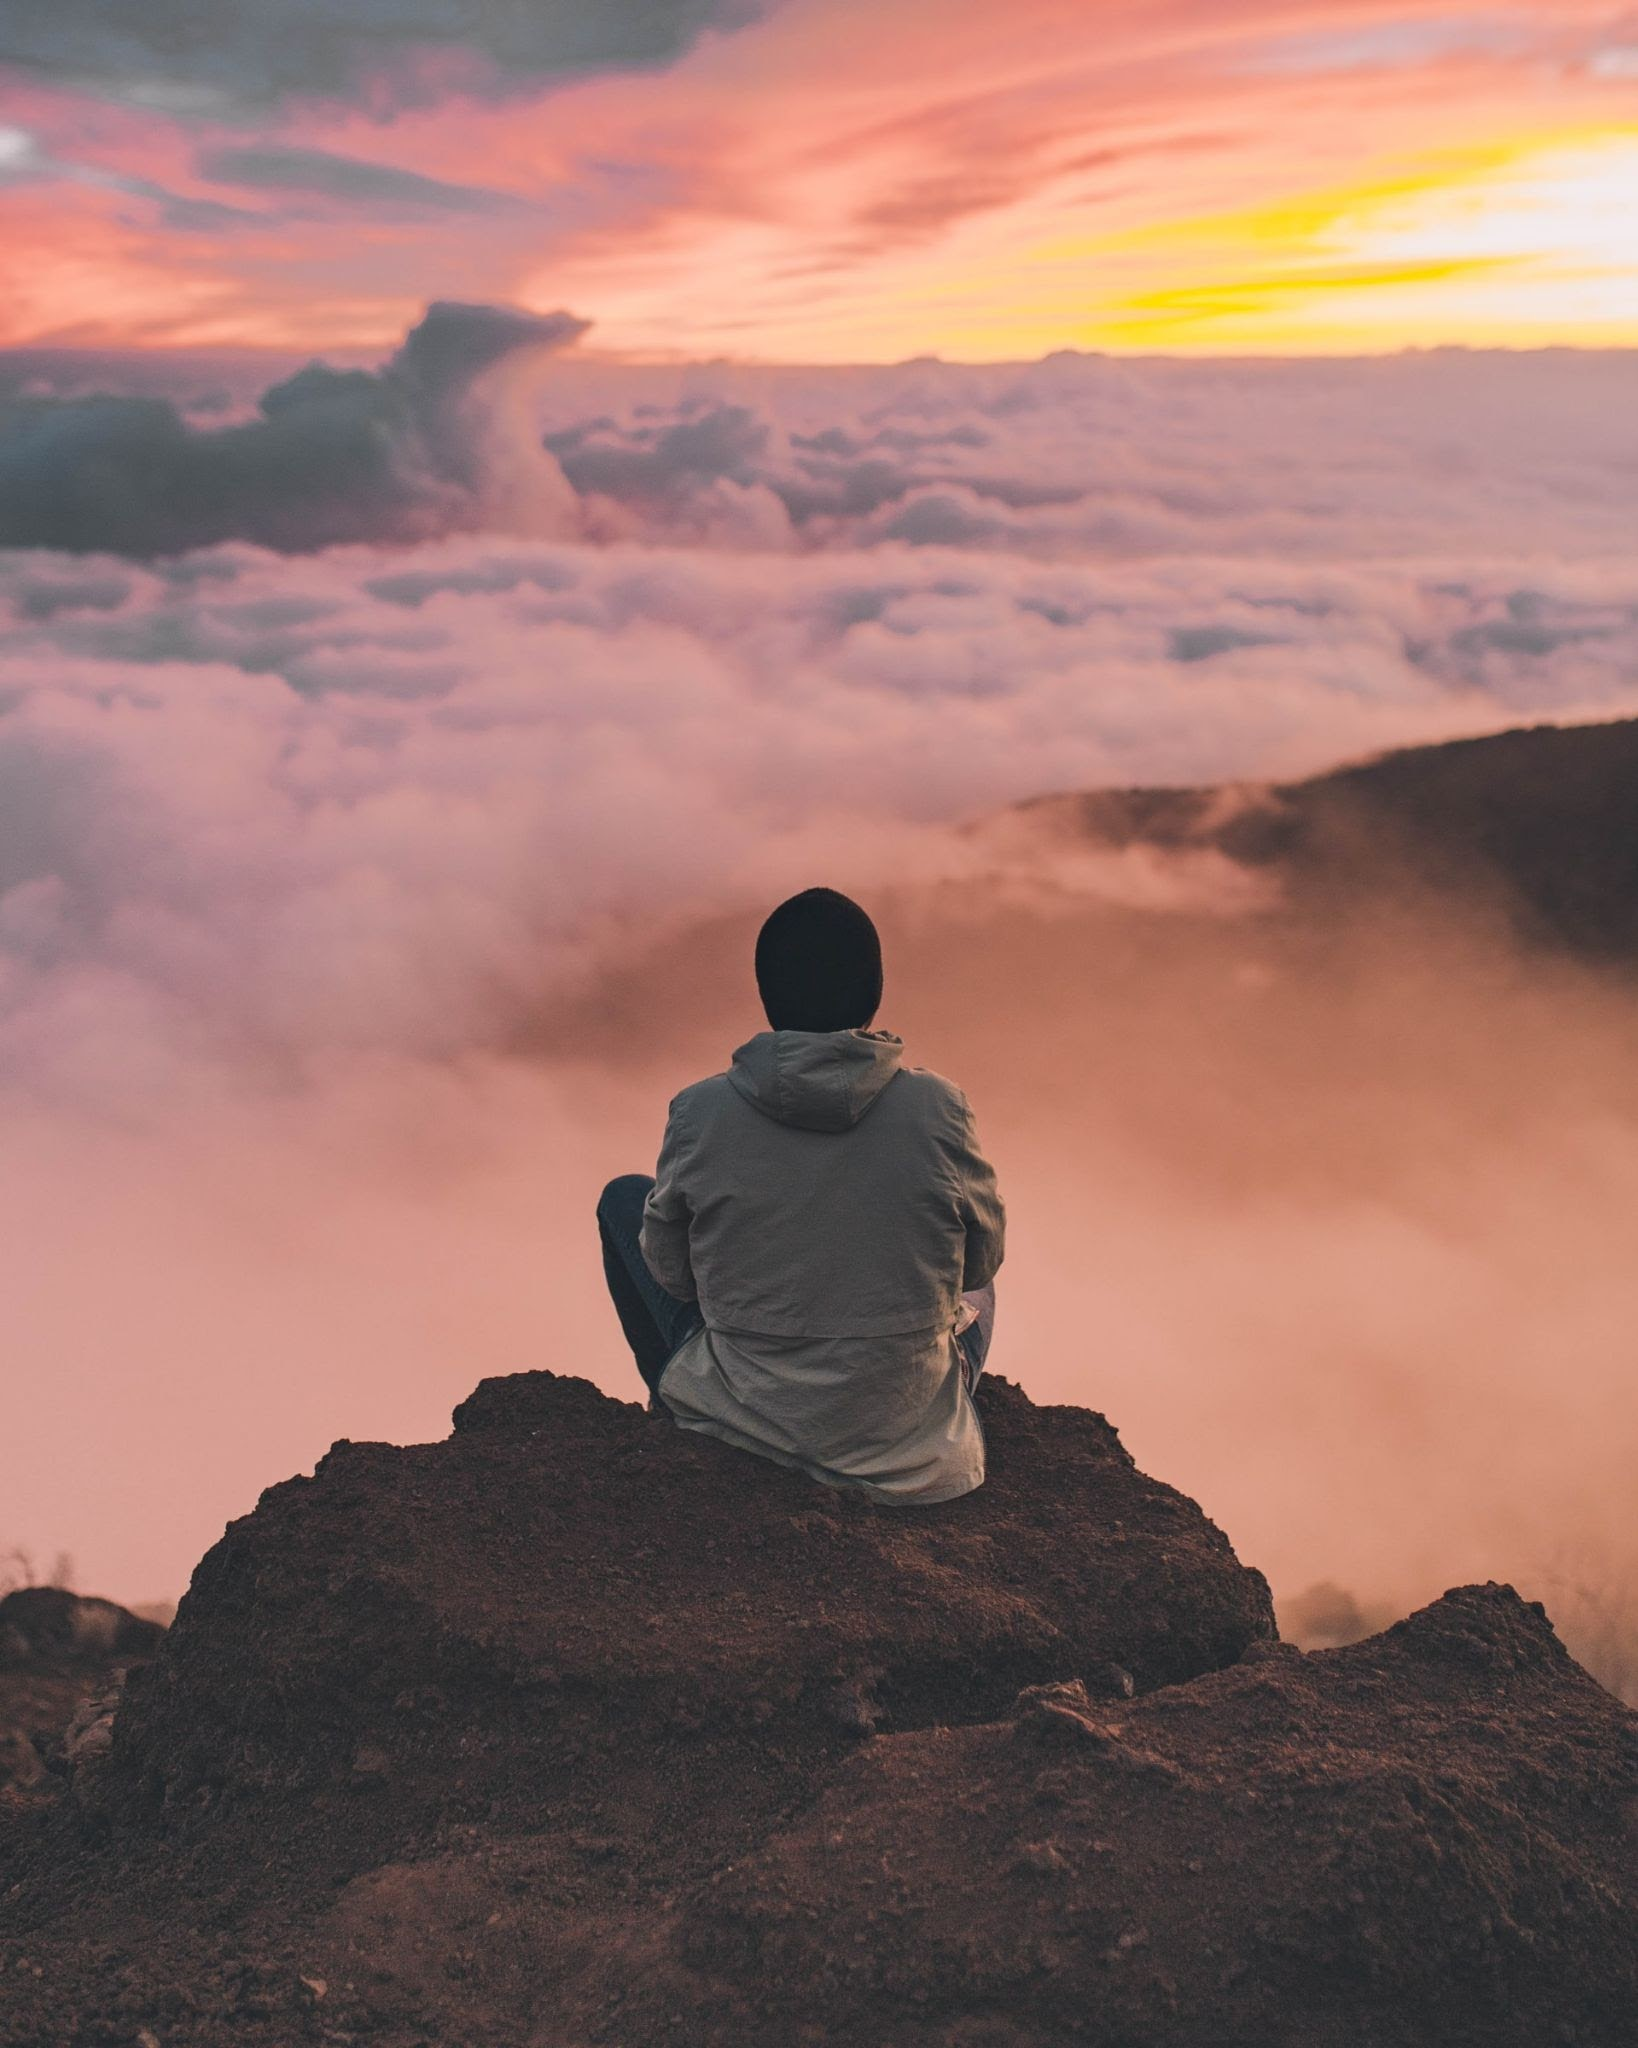 a person sitting on a rock and looking out at the clouds